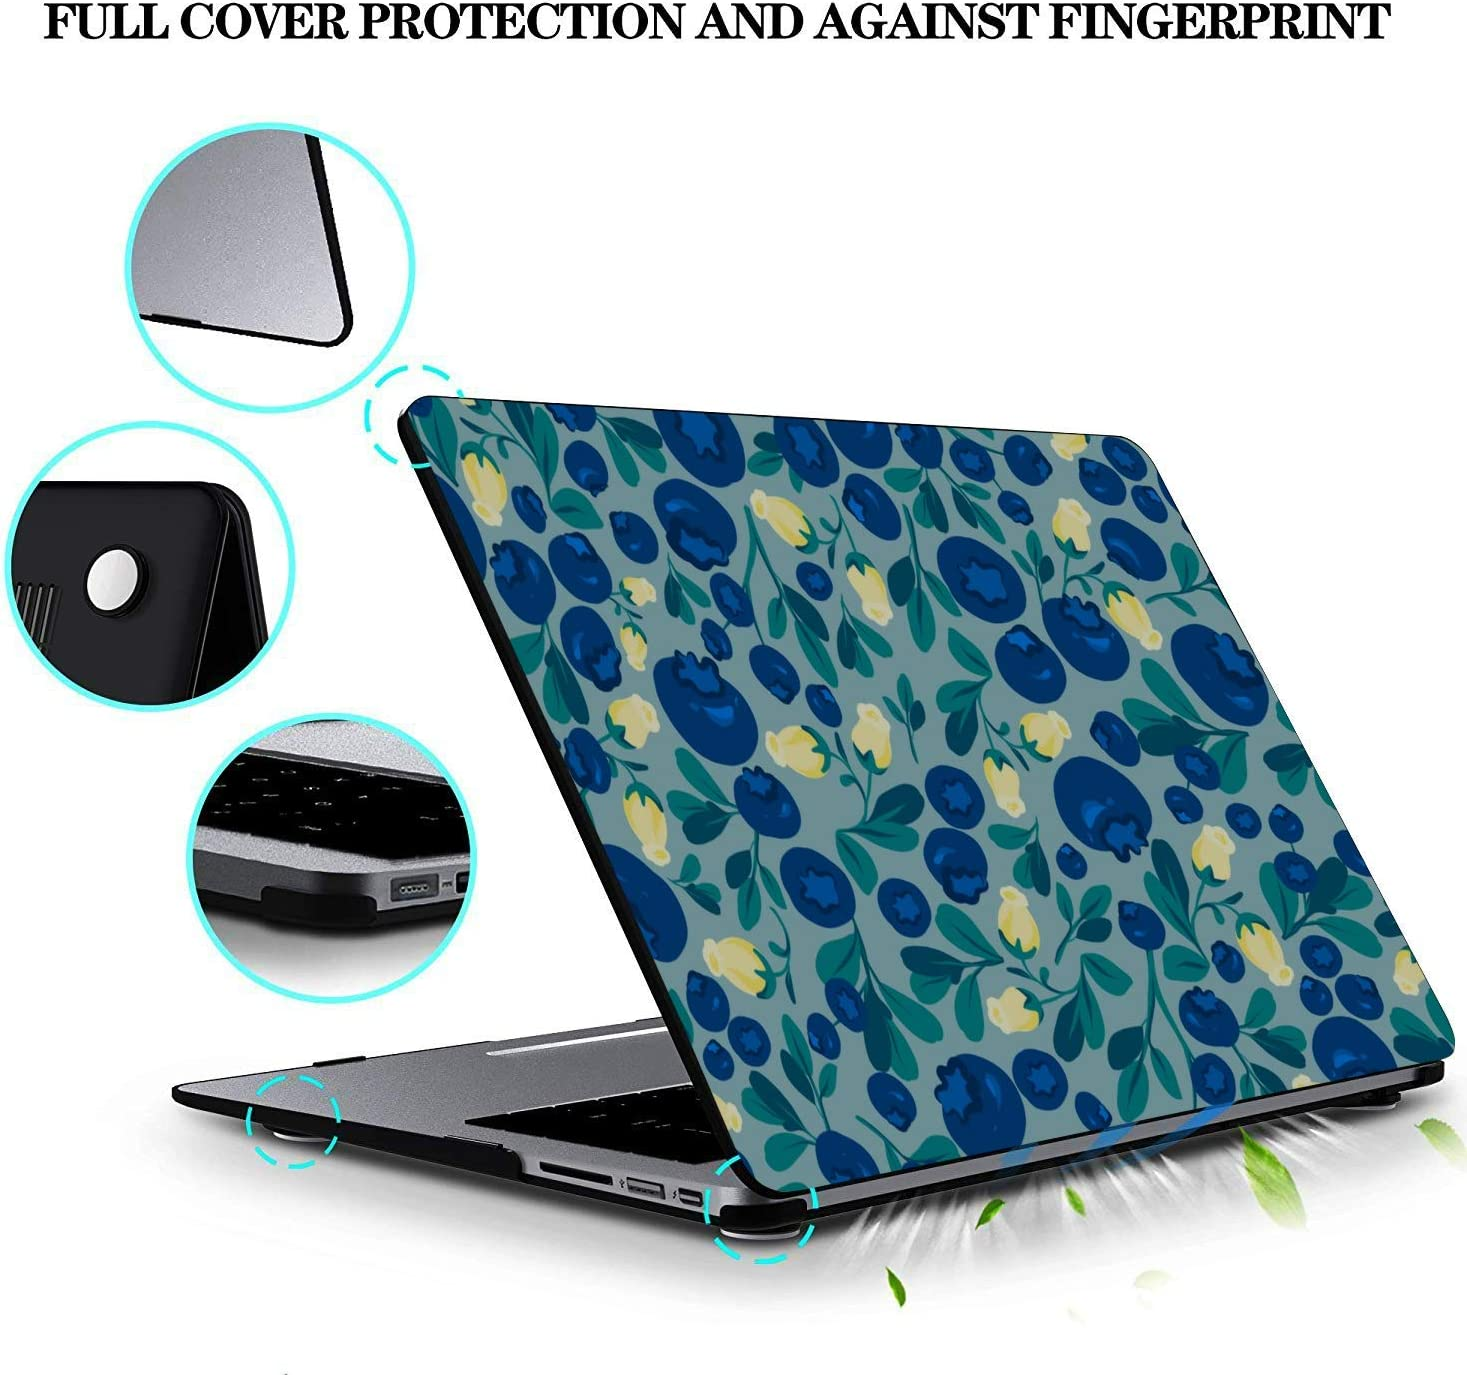 Mac Pro Cover Summer Sweet Sour Fruit Blueberry Plastic Hard Shell Compatible Mac Air 11 Pro 13 15 MacBook Air Shell Protection for MacBook 2016-2019 Version